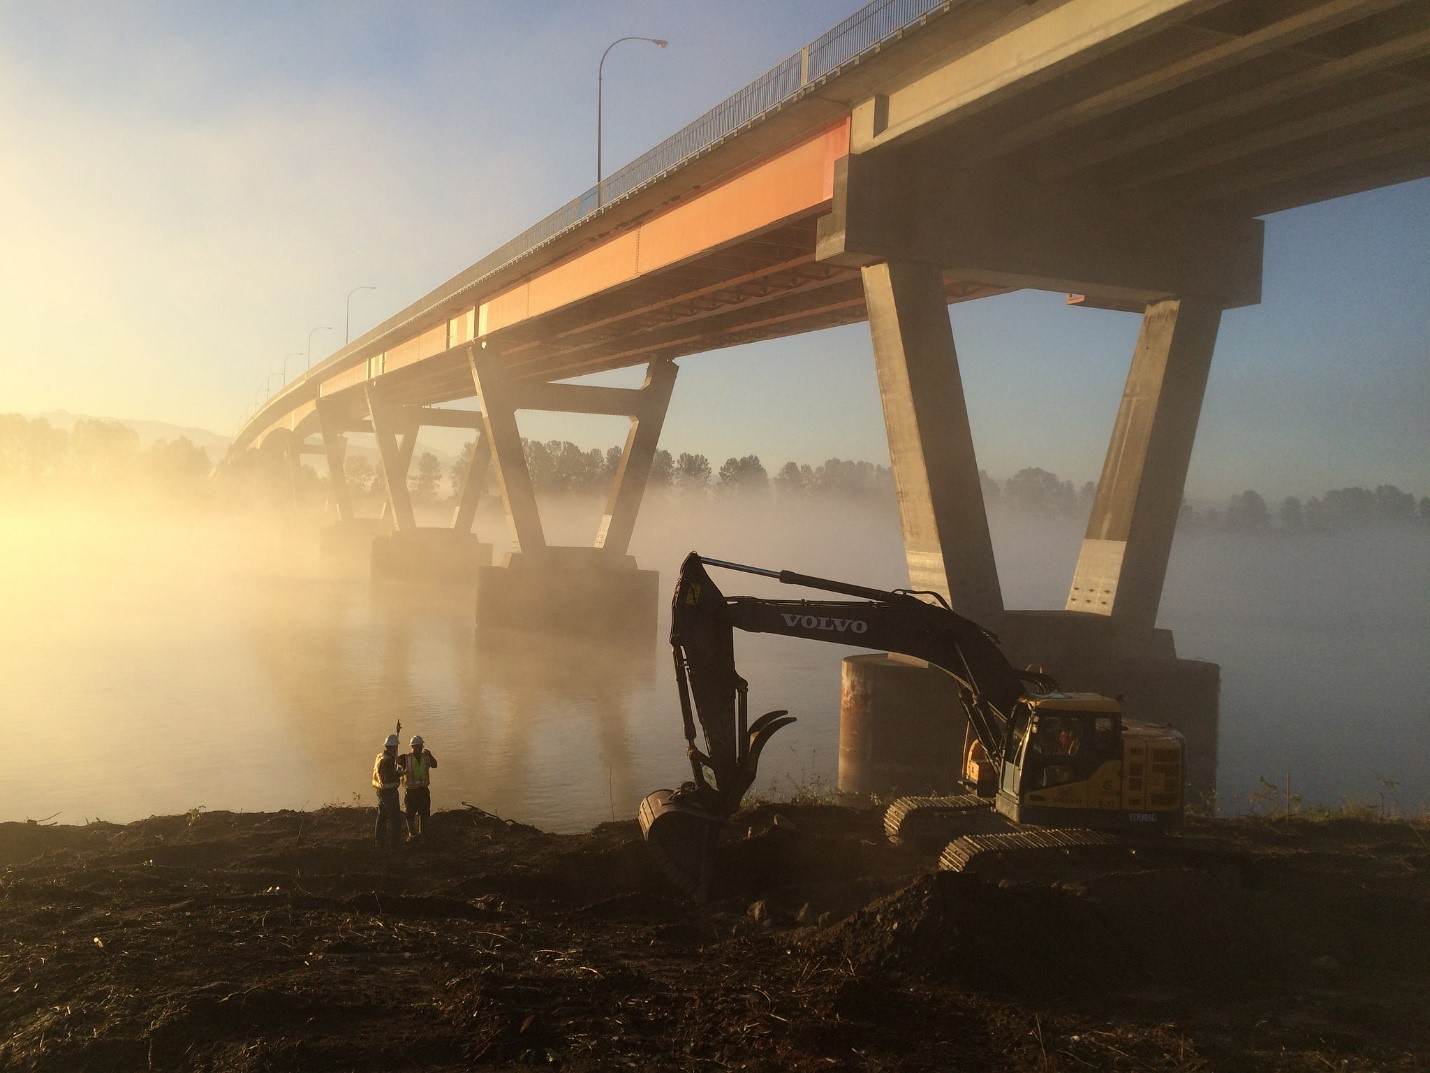 Workers at the site of the Mission River Bridge during seismic upgrades